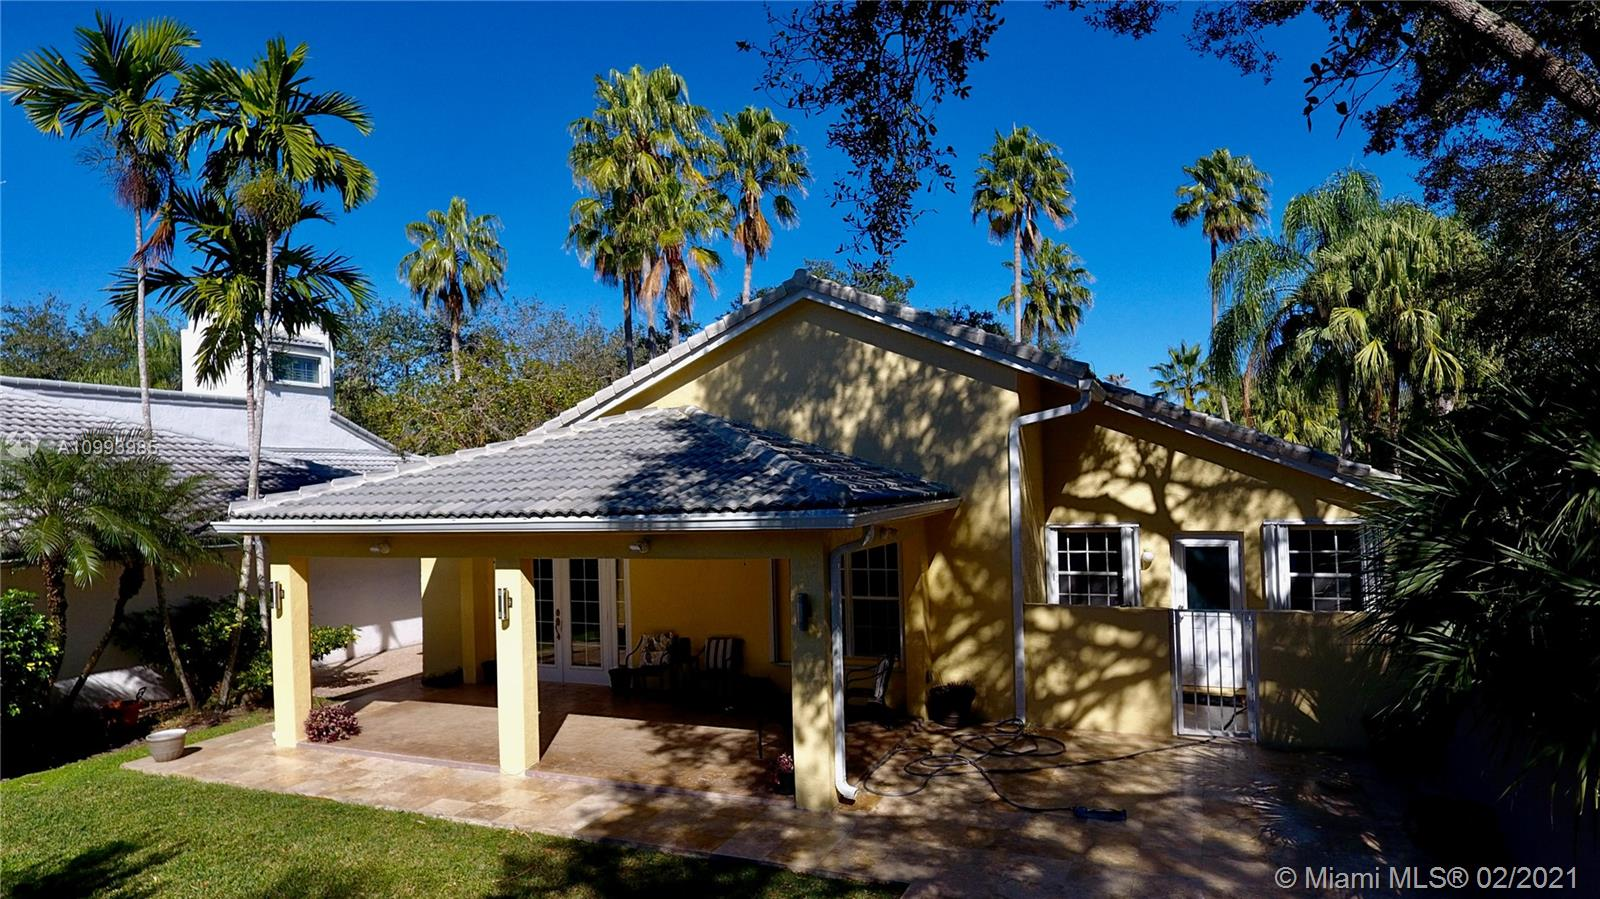 Captiva Cay ideal home for investors: leased till 2022, this fully renovated & upgraded: new kitchen, new appliances, new bathrooms, floors, AC and custom closets. Expanded & covered deck with lard backyard, corner lot surrounded by trees. Accordion hurricane shutters, great Tenants. Great schools, walking distance to Country Isles Park, Weston Town Center, Midtown Athletic and Country Isles Elementary. 